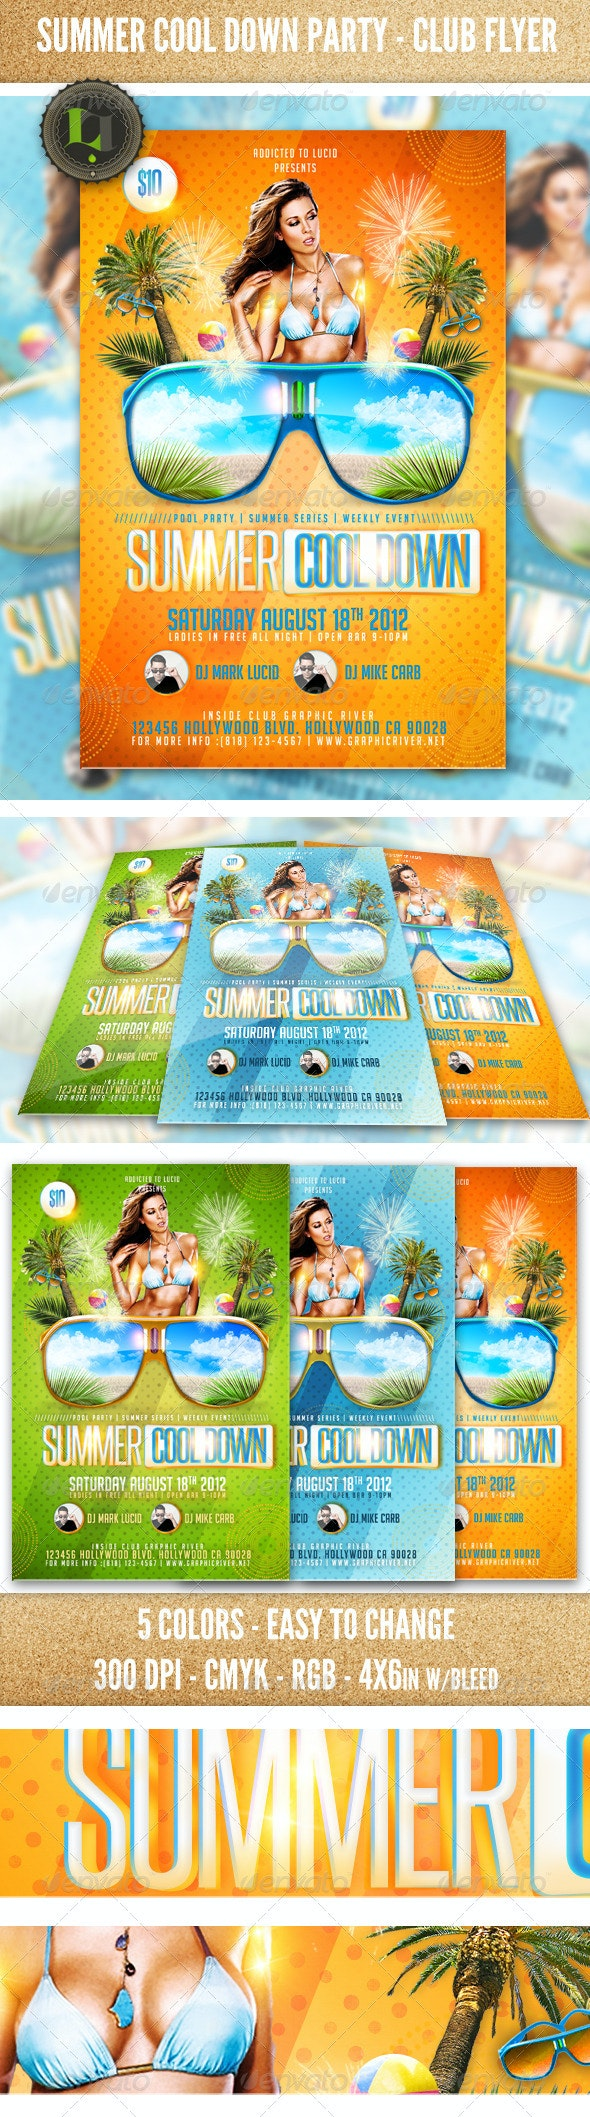 Summer Cool Down Party - Club Flyer - Clubs & Parties Events